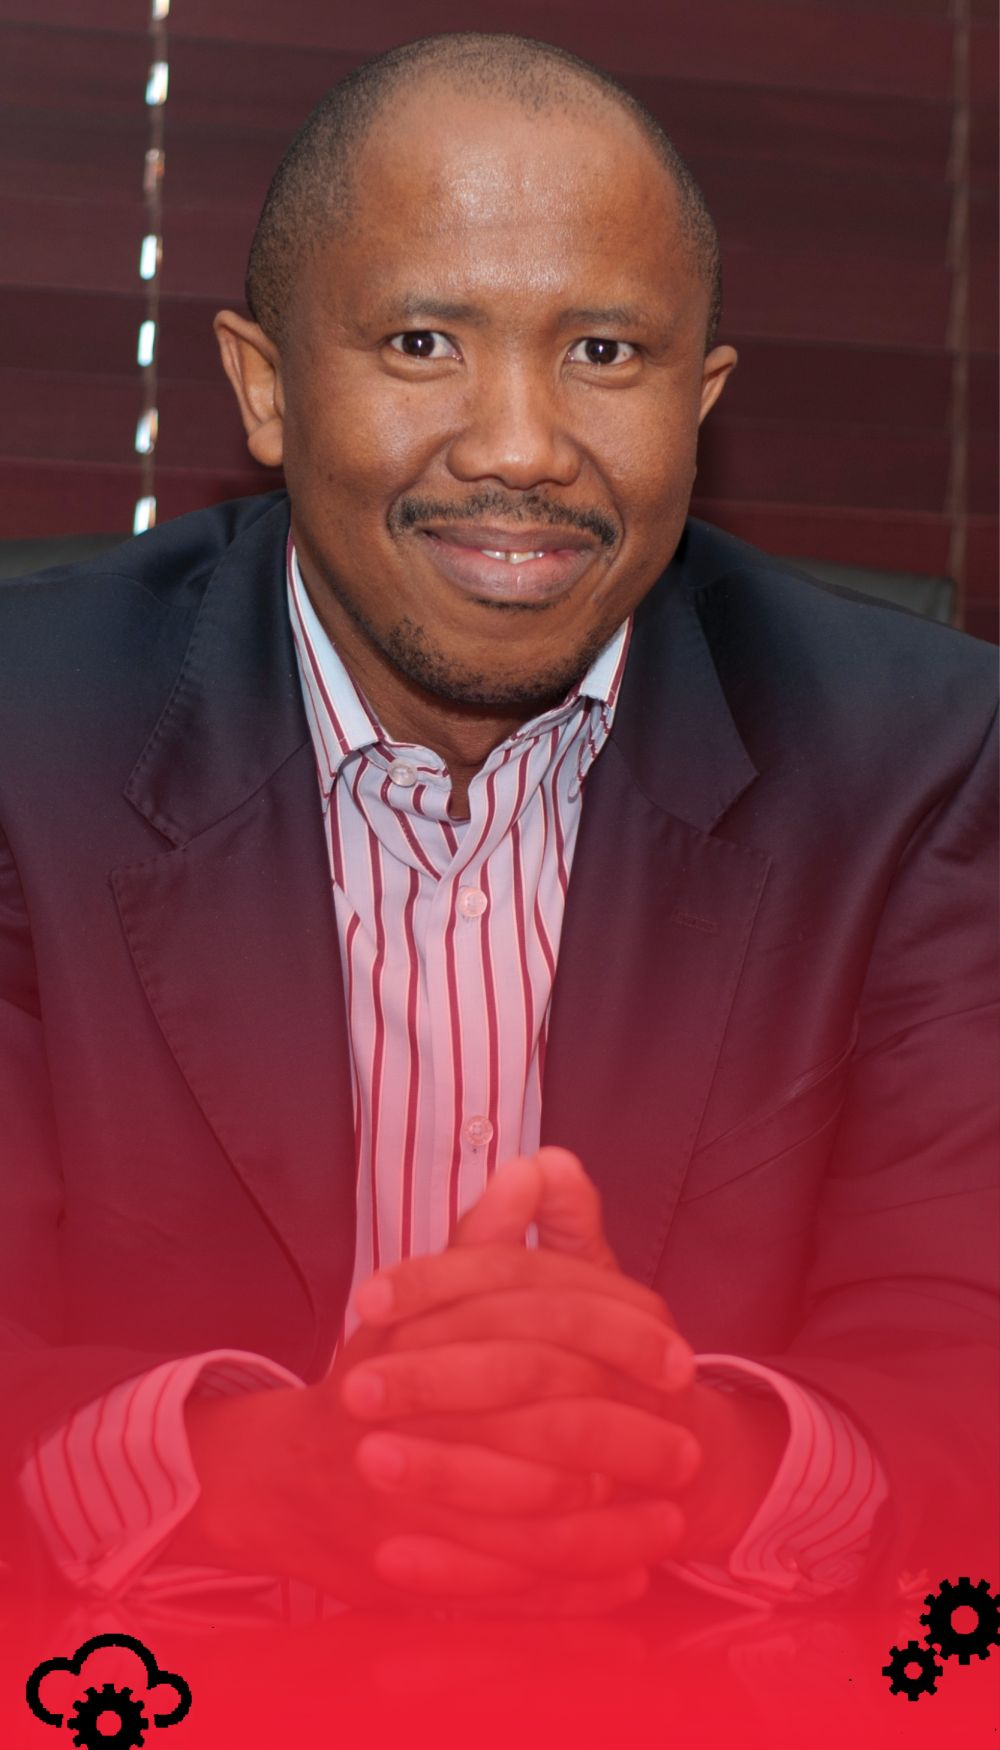 Abey Kgotle, Exectuive Vice President Human Resources, Lonmin